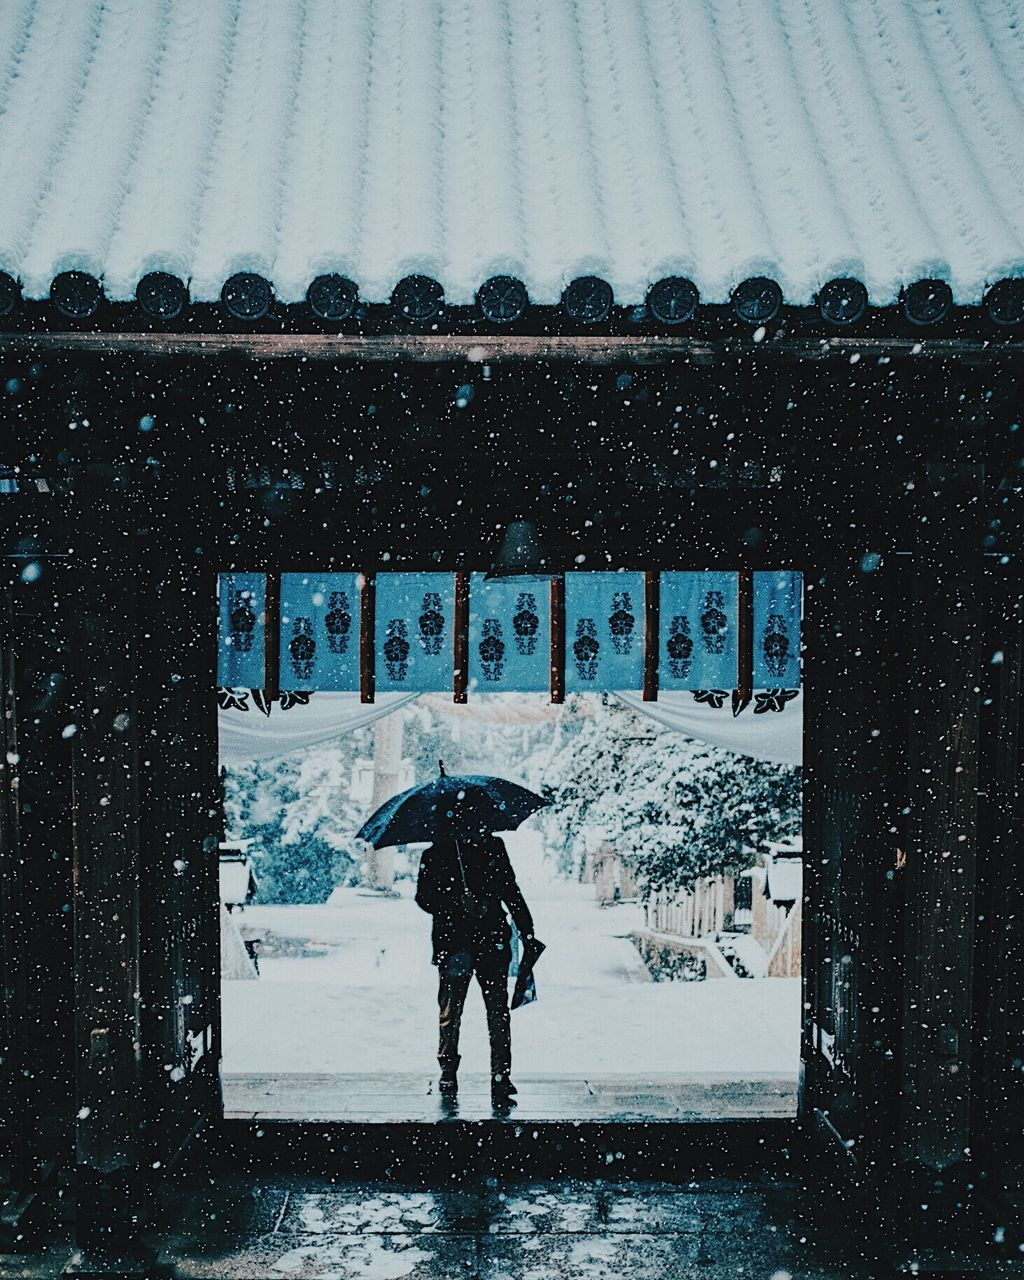 weather, winter, snow, cold temperature, rain, snowing, wet, real people, protection, outdoors, nature, day, built structure, water, architecture, one person, warm clothing, full length, building exterior, beauty in nature, under, people